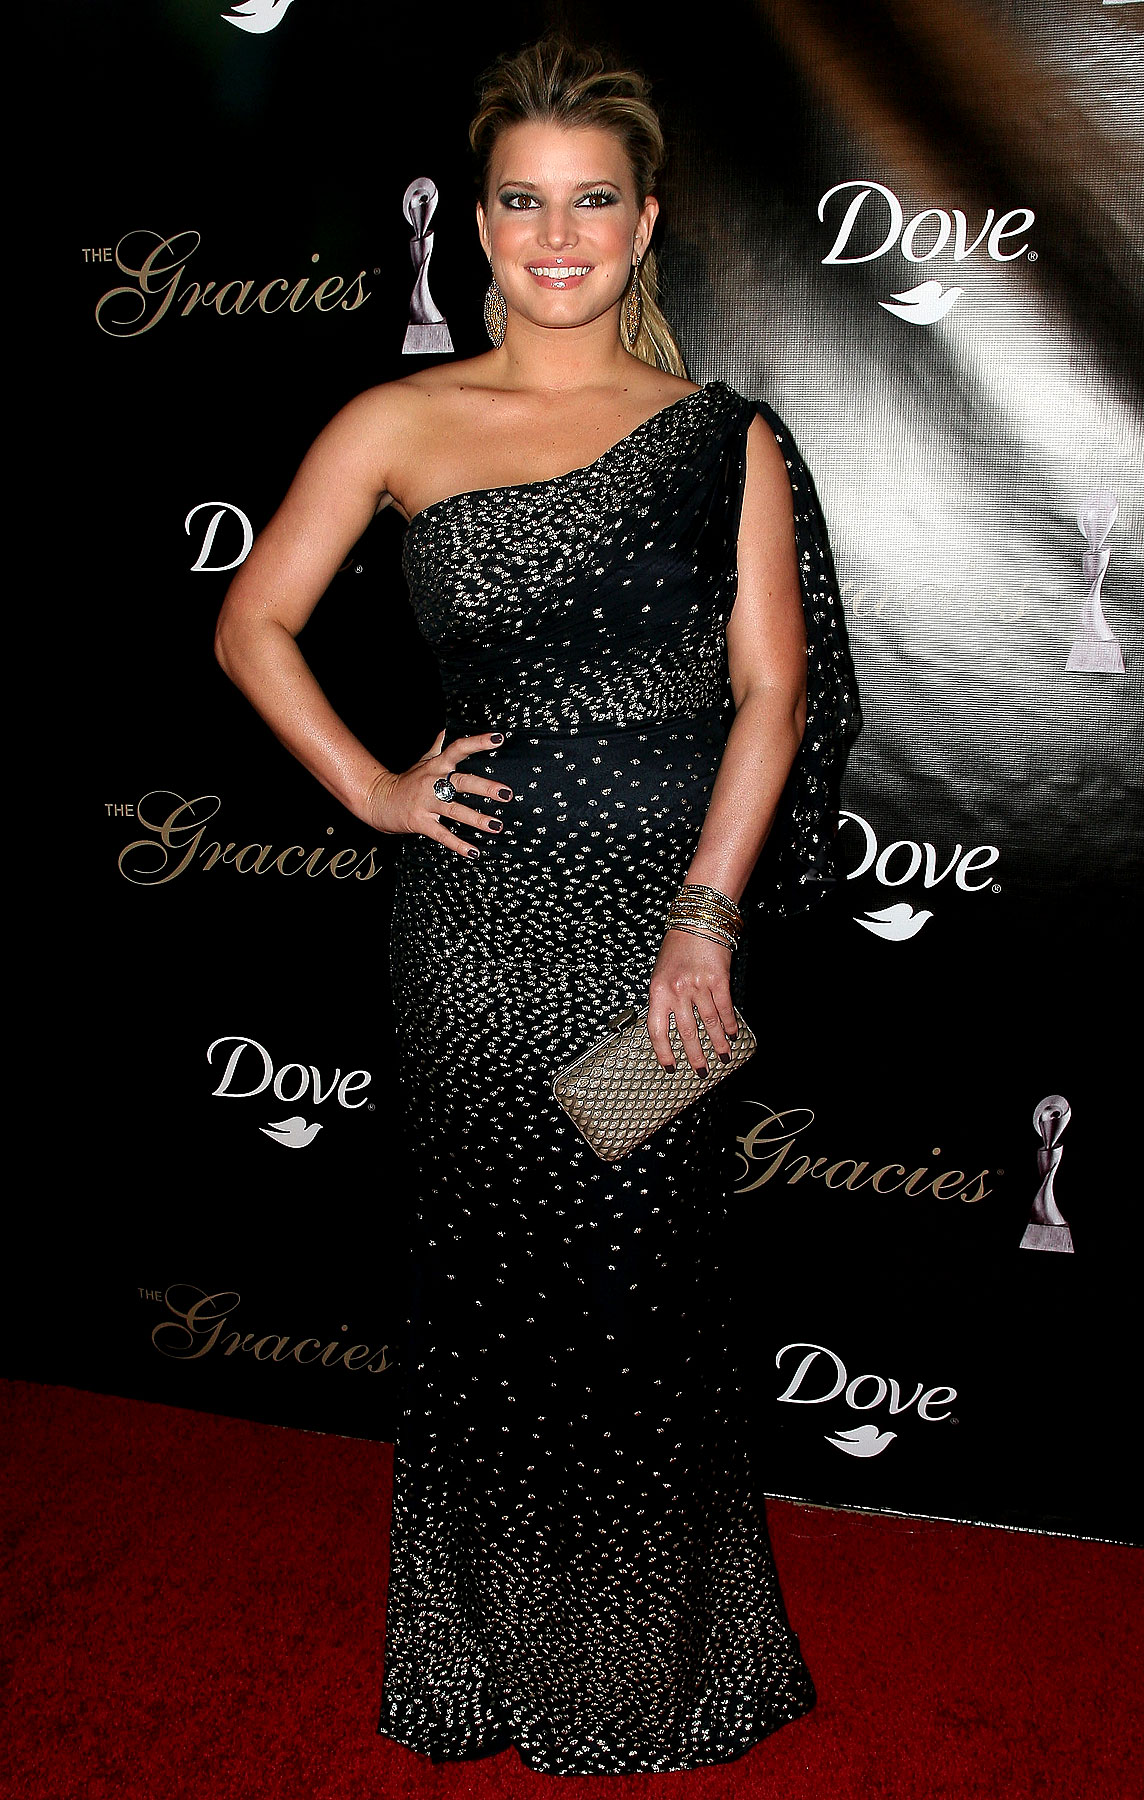 Jessica Simpson Looks Questionable At The Gracies Awards (PHOTOS)